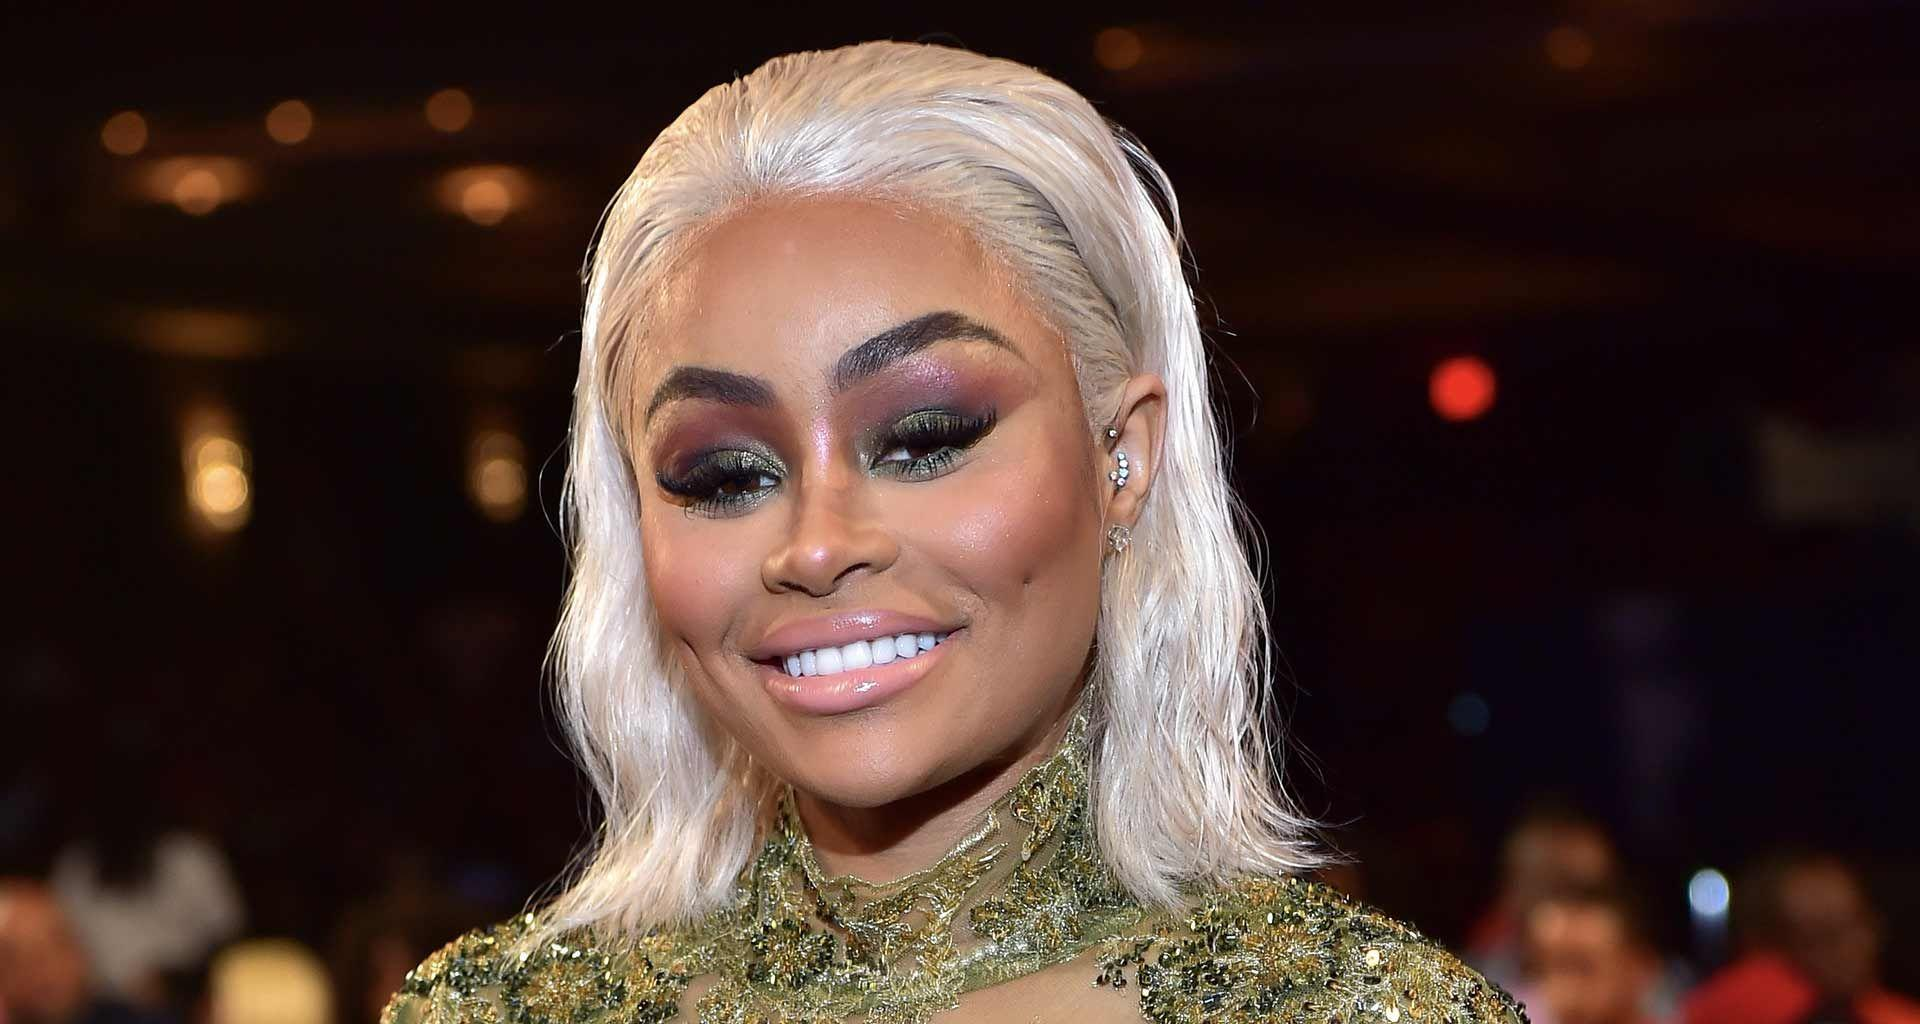 Blac Chyna Shares New Clips From Her TV Series And Fans Are Freaking Out